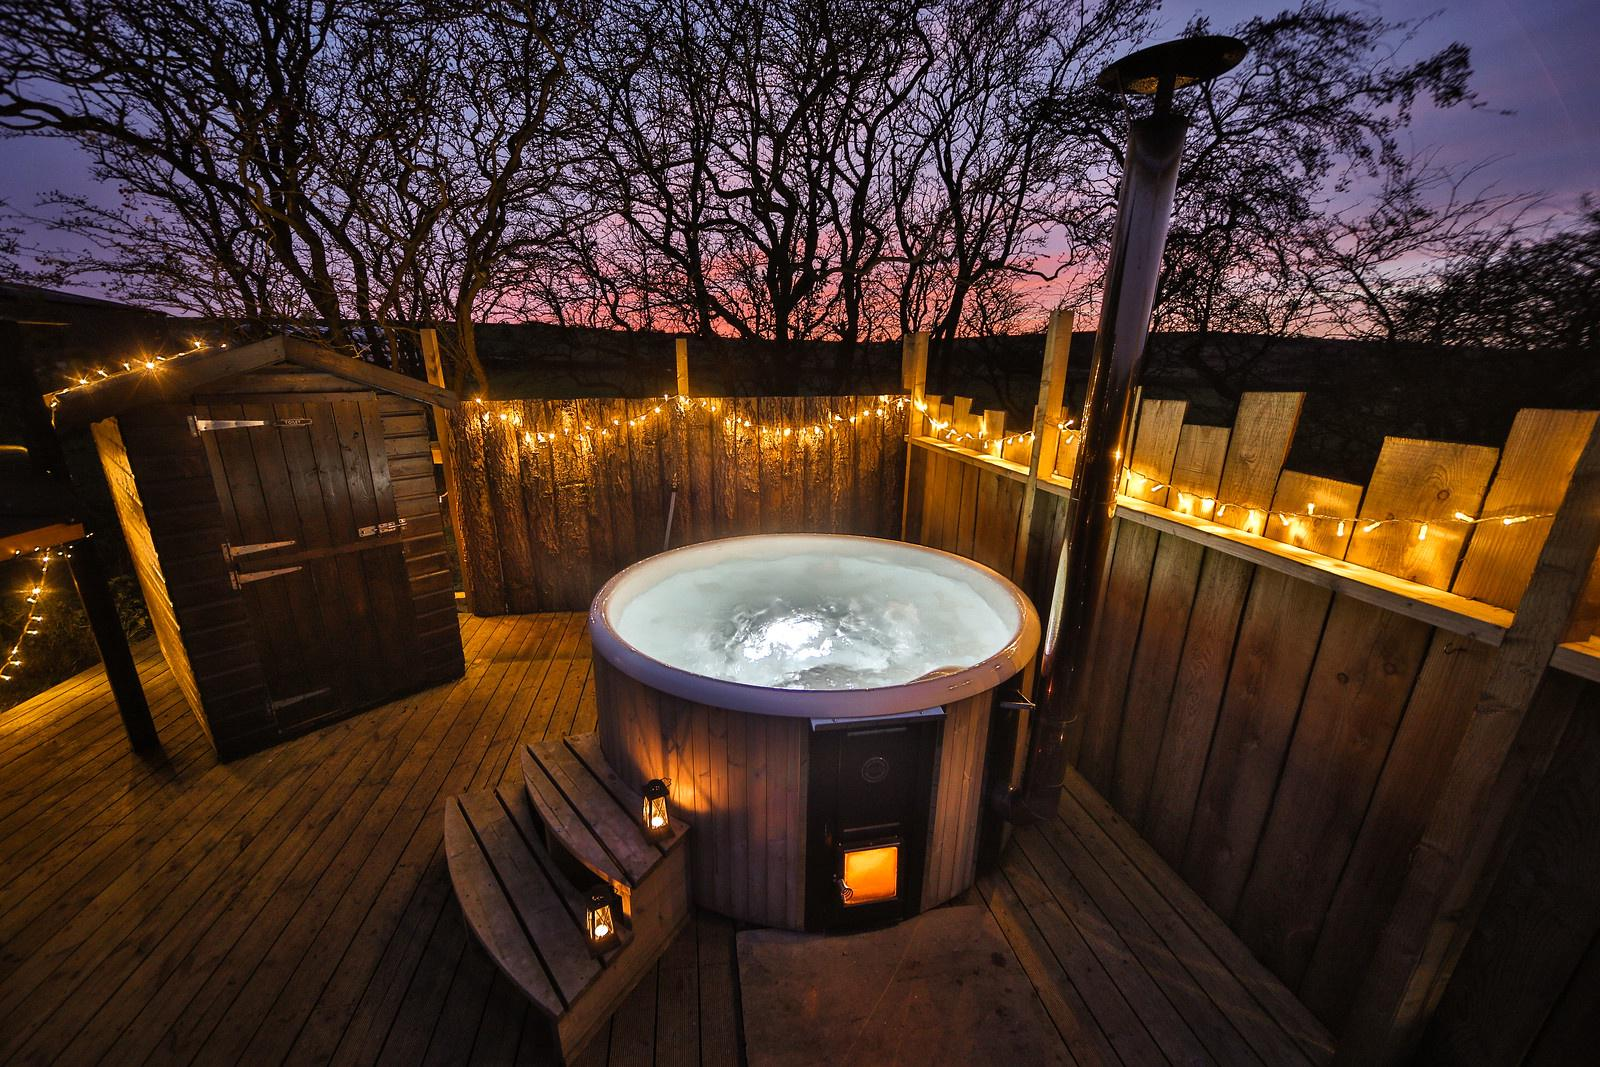 Admirable Glamping Sites With Hot Tubs The Best Hot Tub Glamping Sites Best Image Libraries Thycampuscom